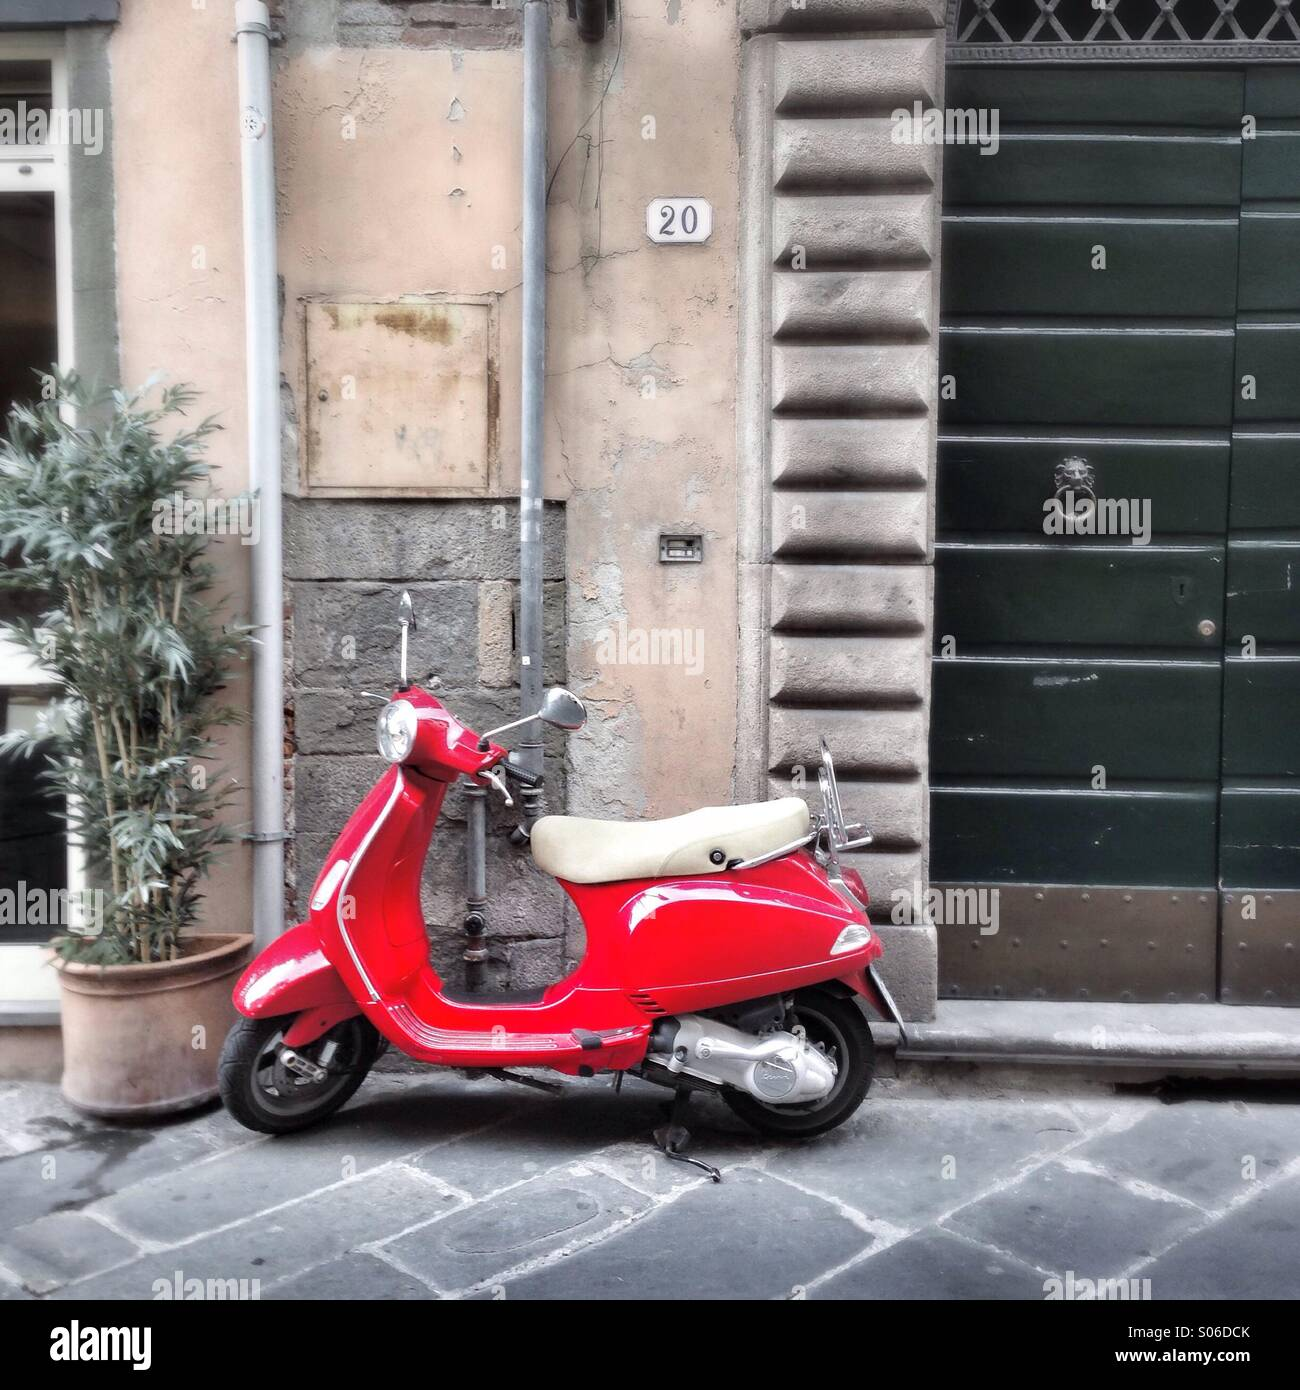 Red Vespa scooter in Lucca, Tuscany, Italy Stock Photo